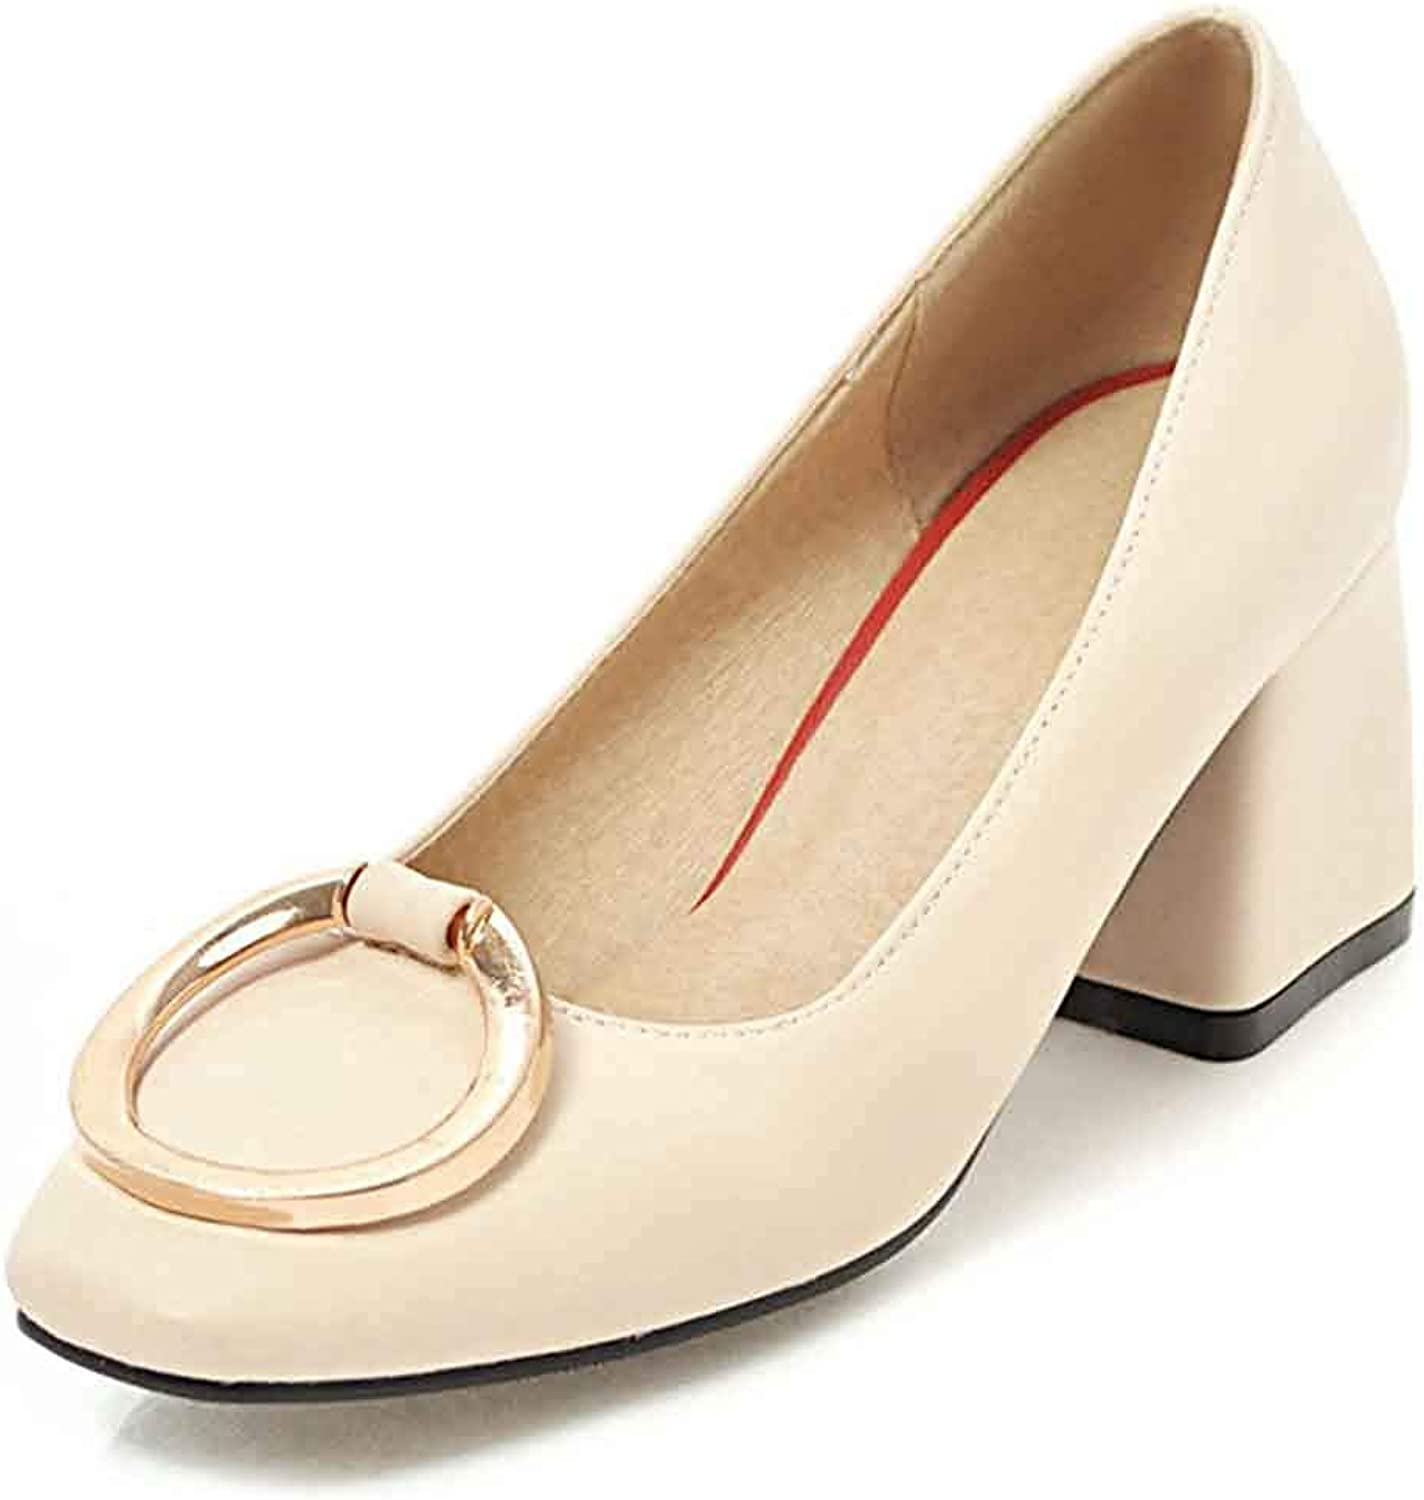 Unm Women's Square Toe Pumps shoes - Comfy Outdoor Block Middle Heels - Dressy Slip On Low Cut Party shoes